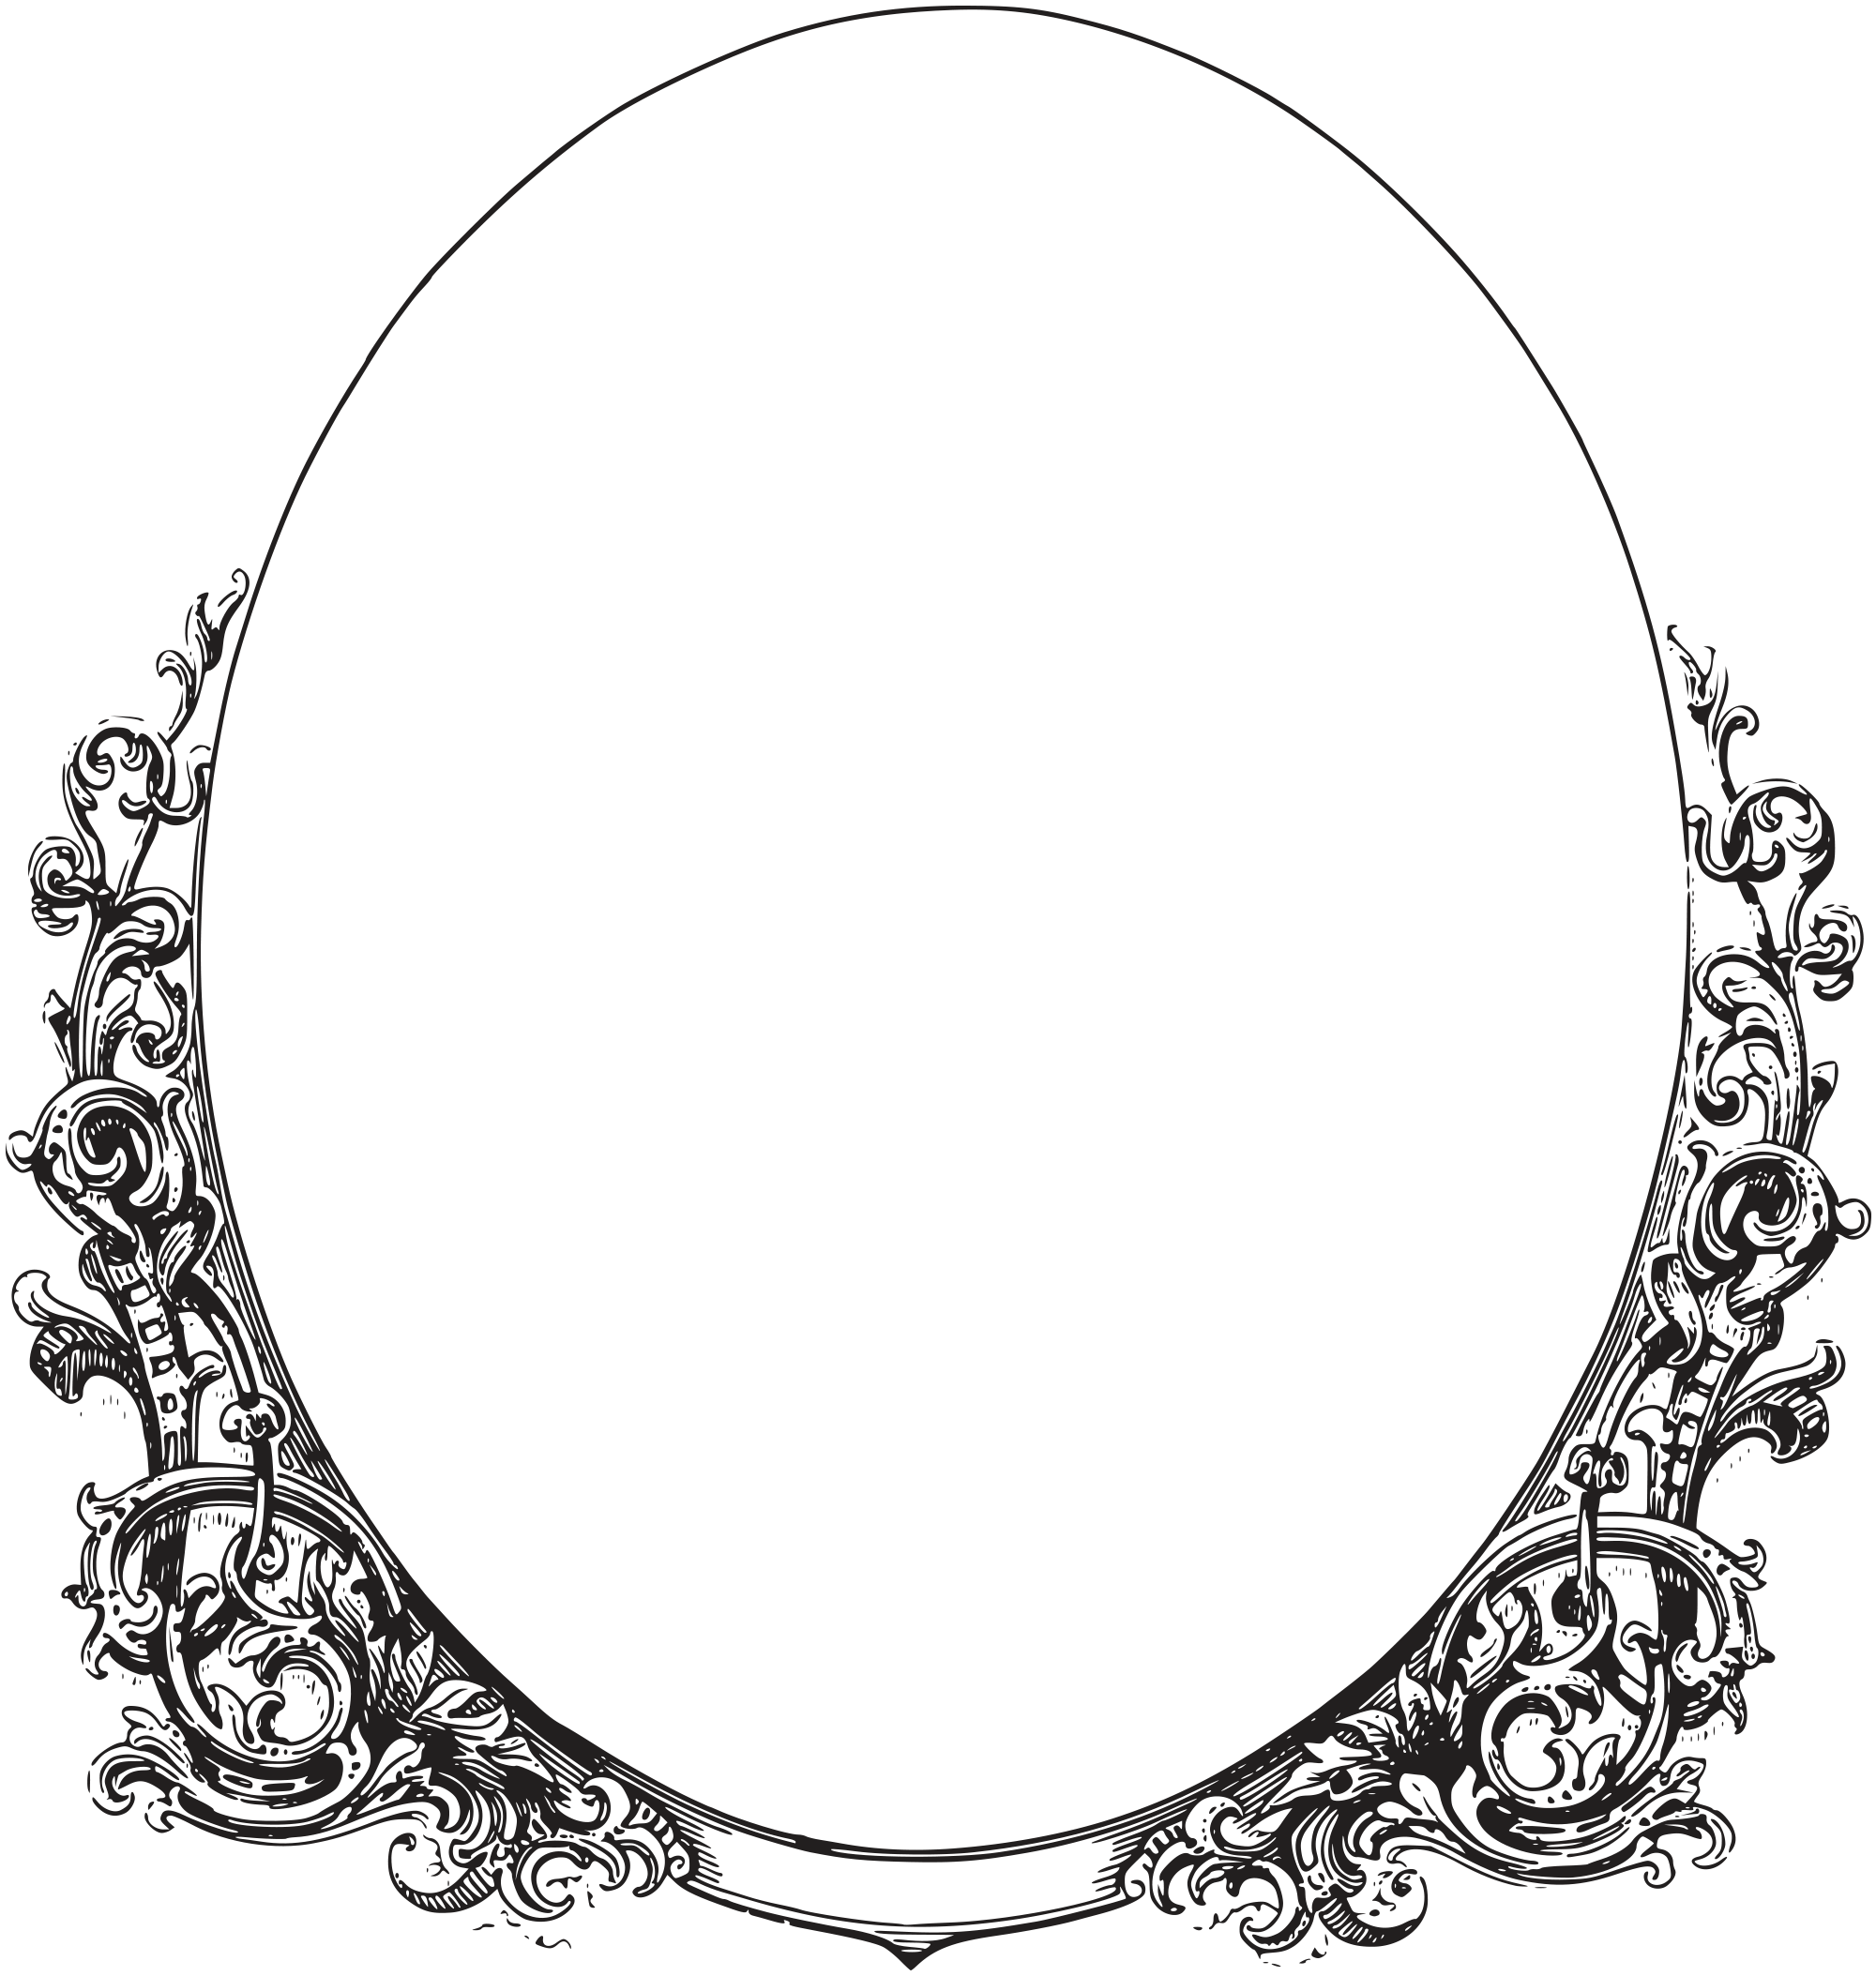 Oval clipart fancy oval frame. Royalty free images ornate